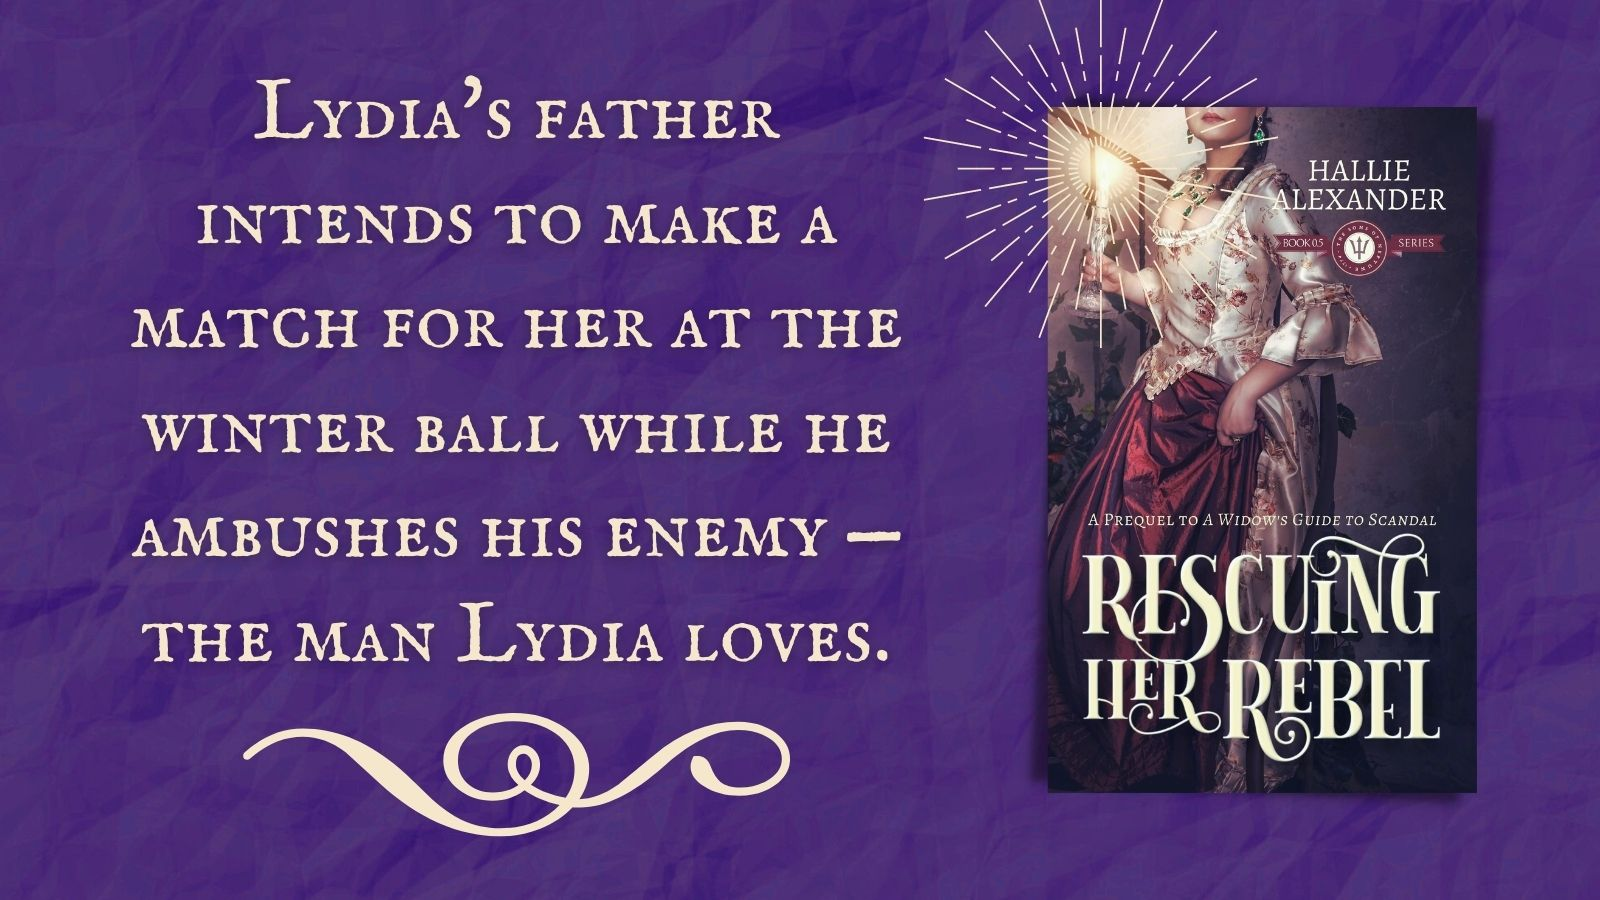 Rescuing Her Rebel: Lydia's father intends to make a match for her at the winter ball while he ambushes his enemy -- the man Lydia loves.